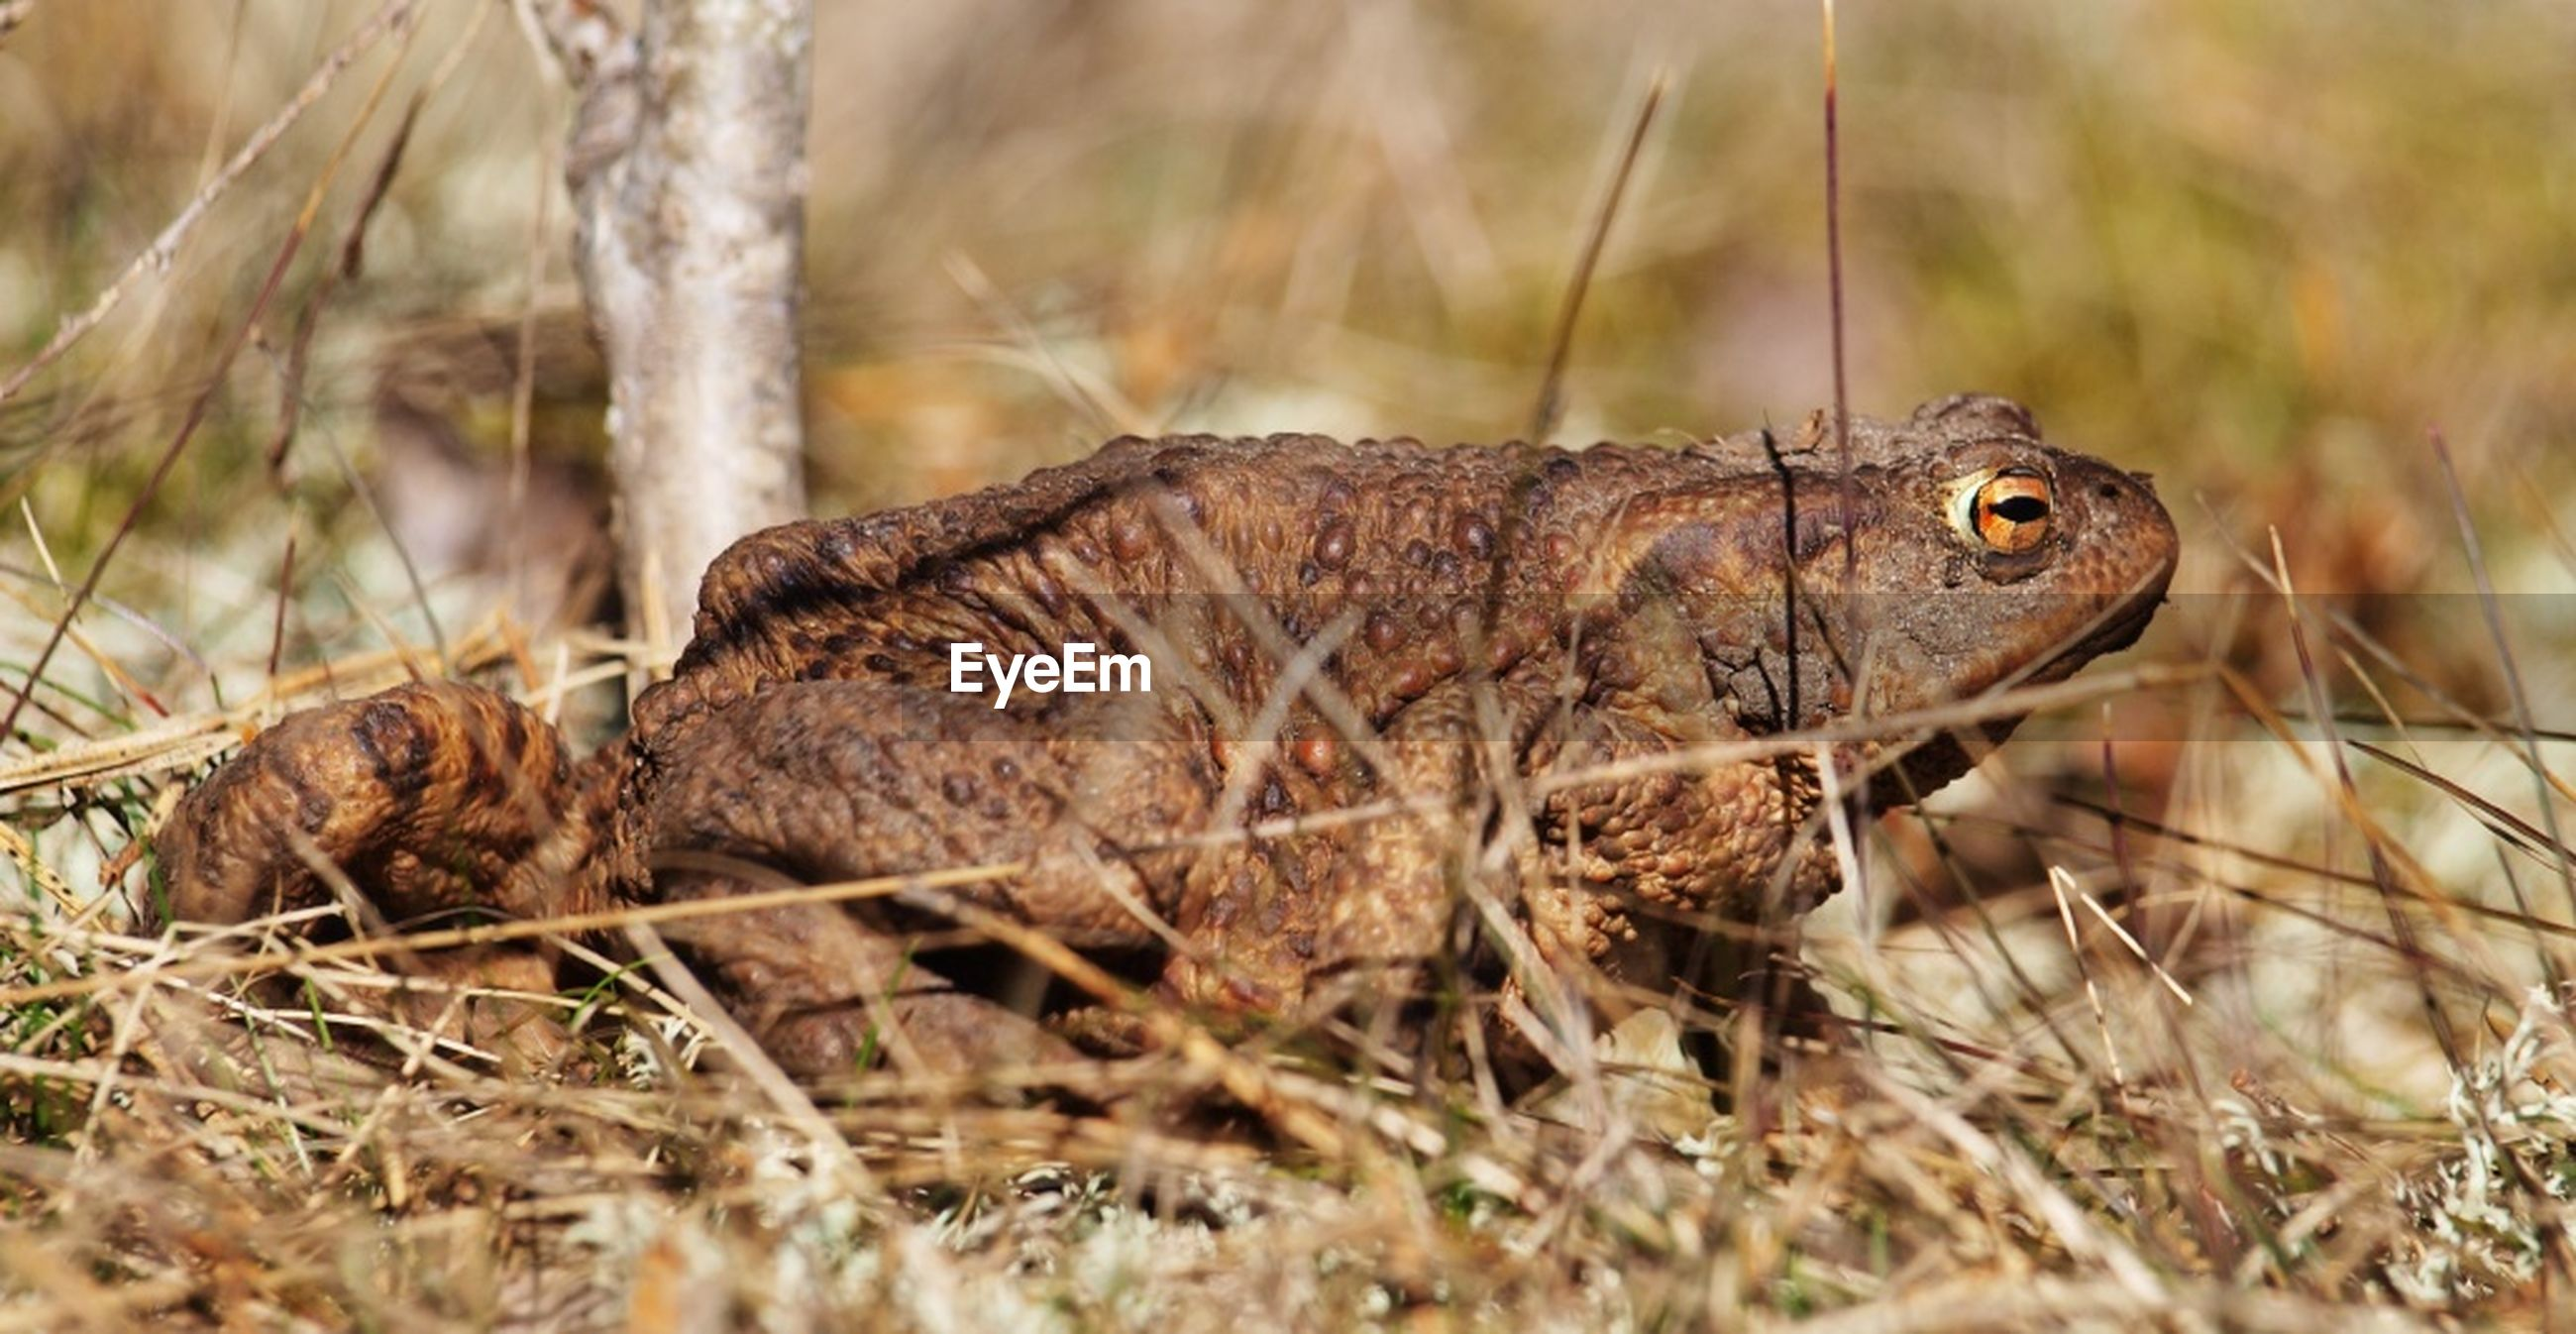 animal themes, one animal, animals in the wild, wildlife, mammal, side view, forest, focus on foreground, animal head, field, reptile, nature, zoology, squirrel, close-up, selective focus, lizard, day, outdoors, no people